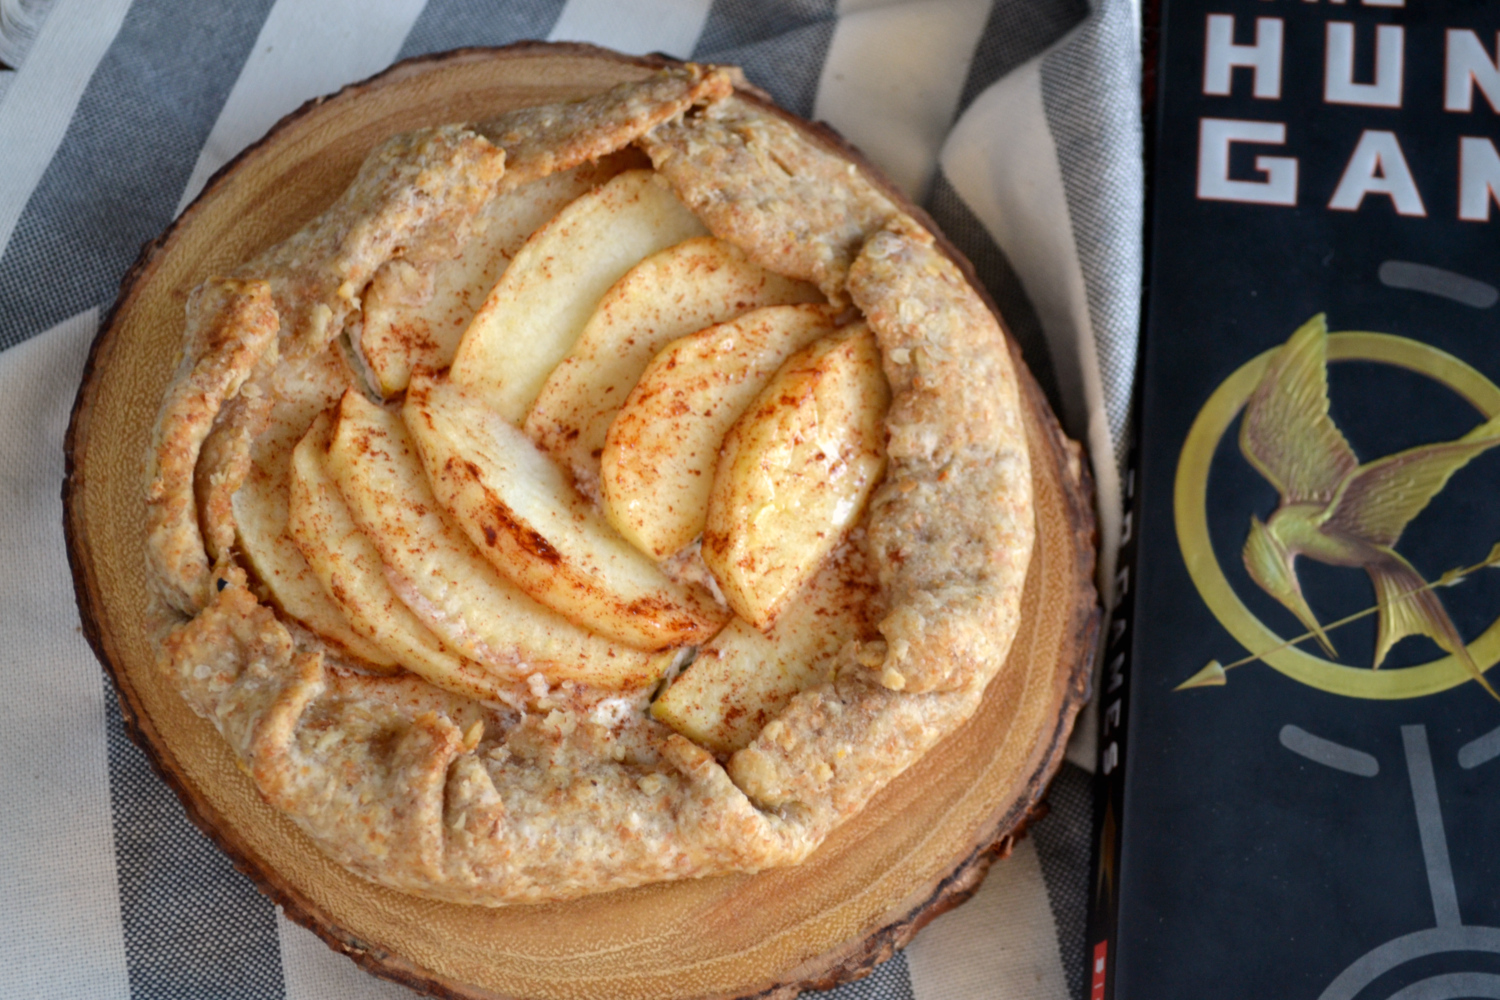 Test Kitchen: The Hunger Games: Apple and Goat Cheese Tart